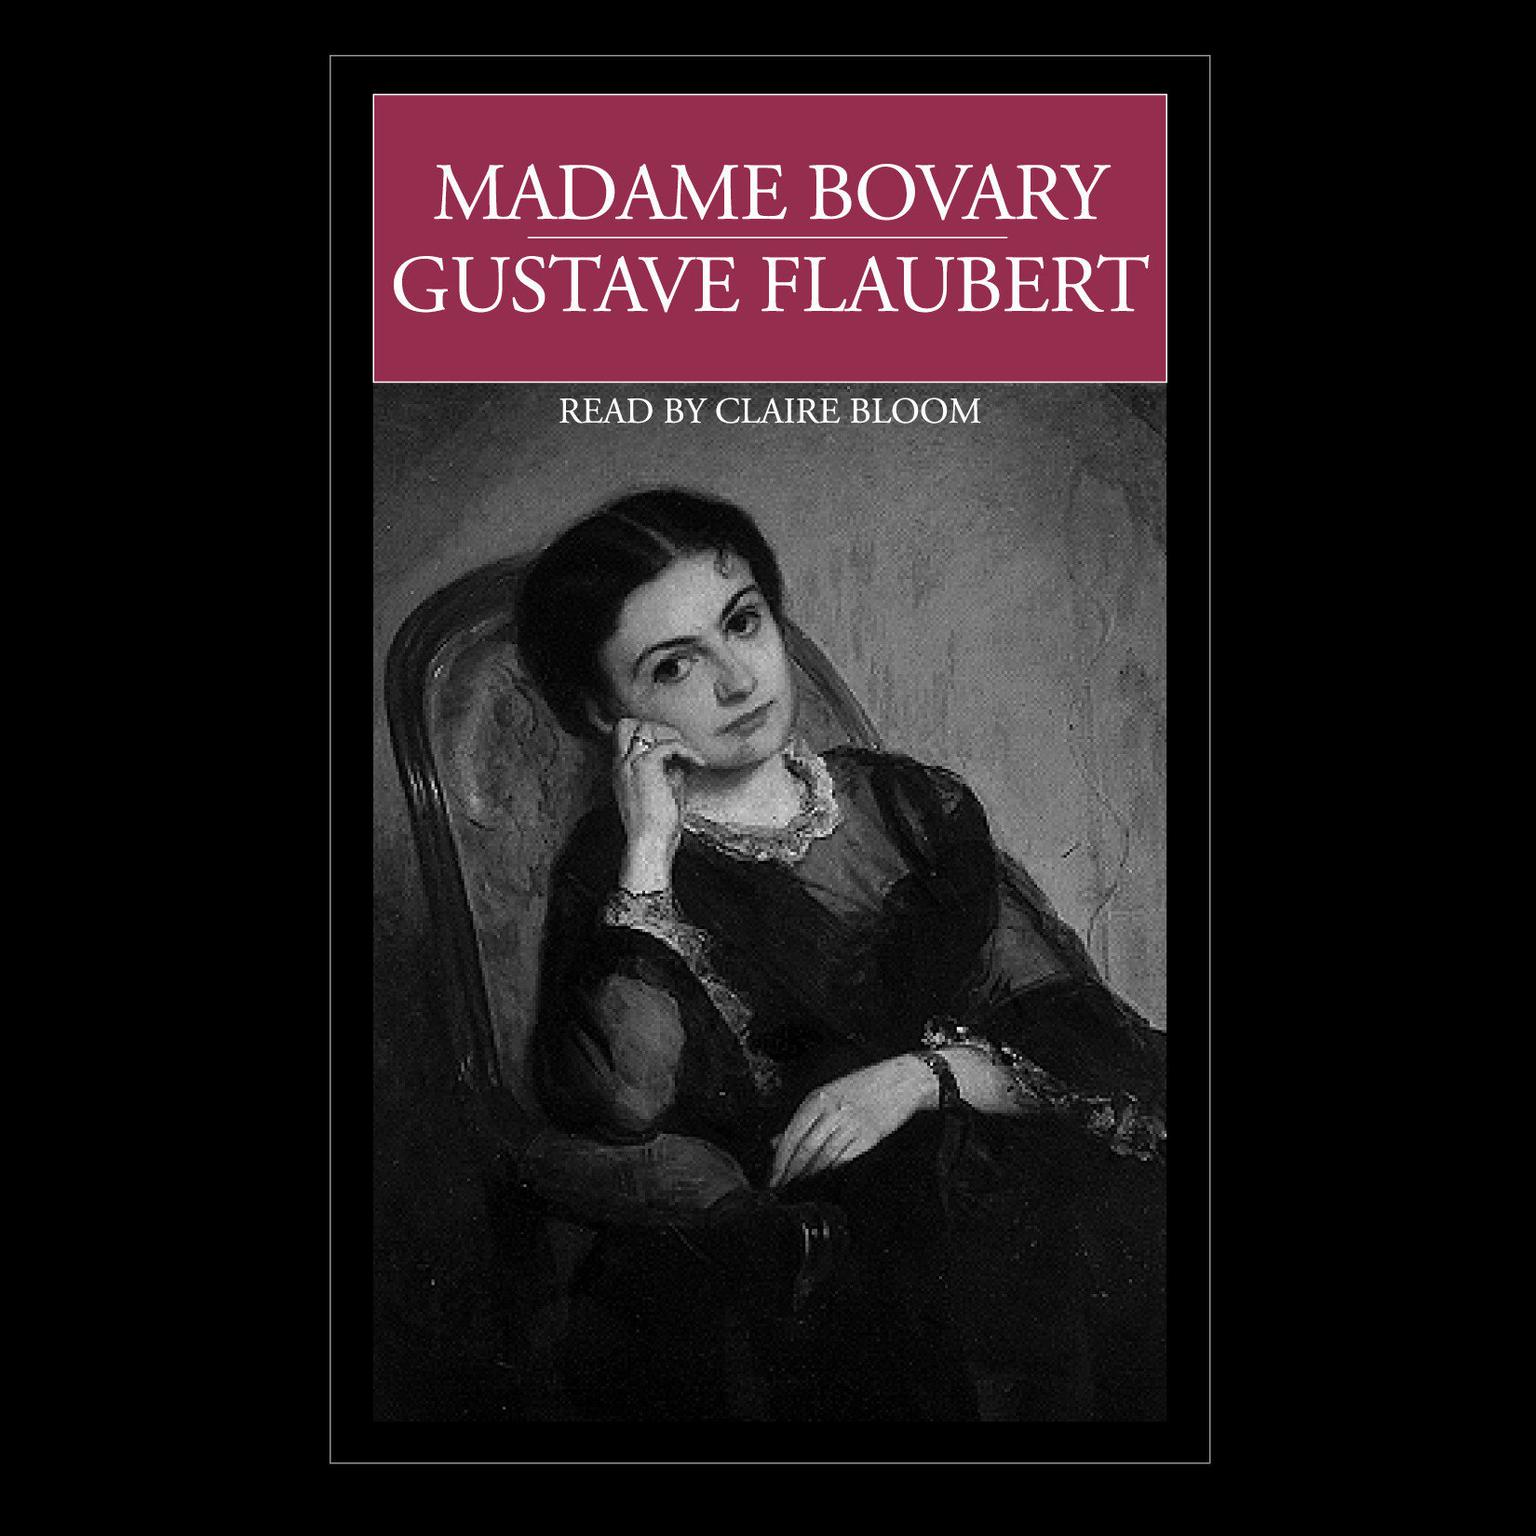 the life of gustave flaubert and his work madame bovary Gustave flaubert (1821-1880), french novelist of the realist period, is known best for his sensational madame bovary (1857), a classic tale of romance and retribution it is a portrait of the young provincial emma bovary as fallen woman and her adulterous liaisons with rodolphe boulanger.